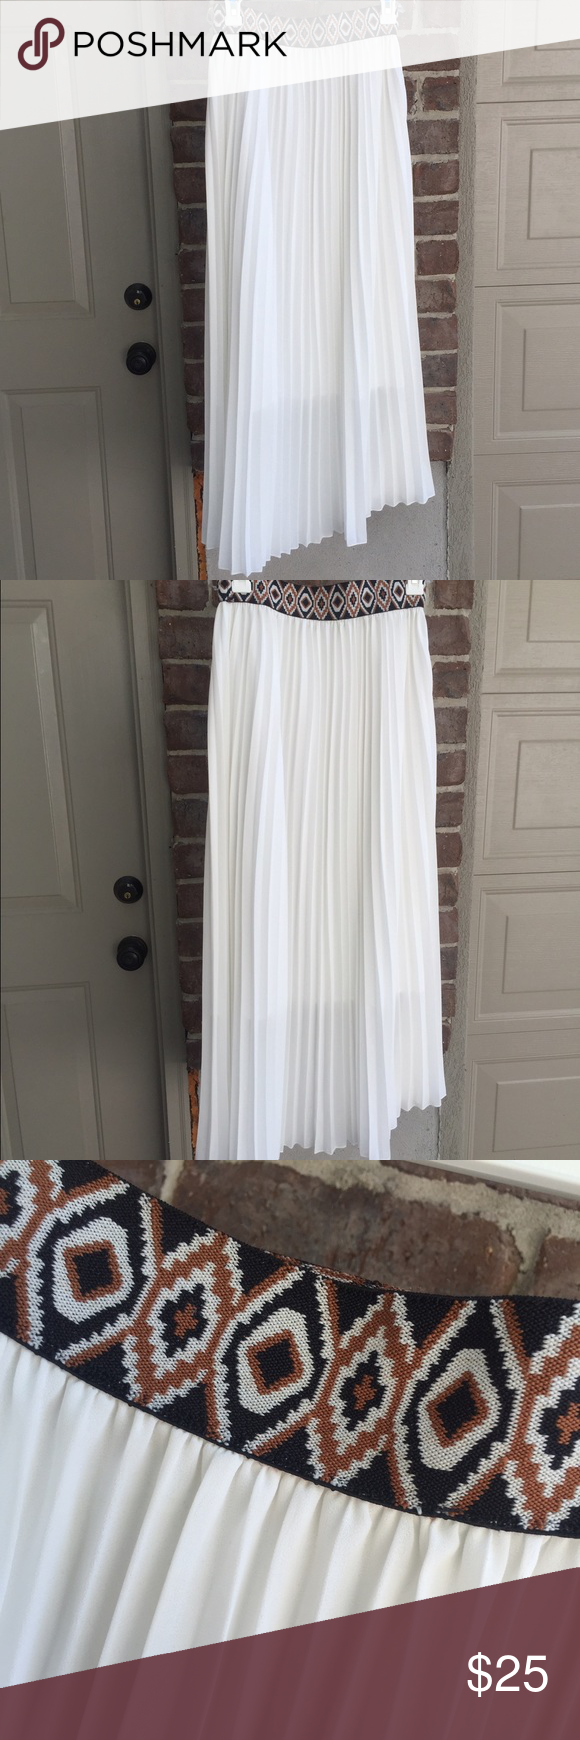 White maxi skirt. Slightly pleated skirt with black and bronze elastic waist band. Liner goes to about calf length. Doesn't say size in tag but fits like a medium but very elastic waist so could probably go up/down a size as well. Mint Green Skirts Maxi